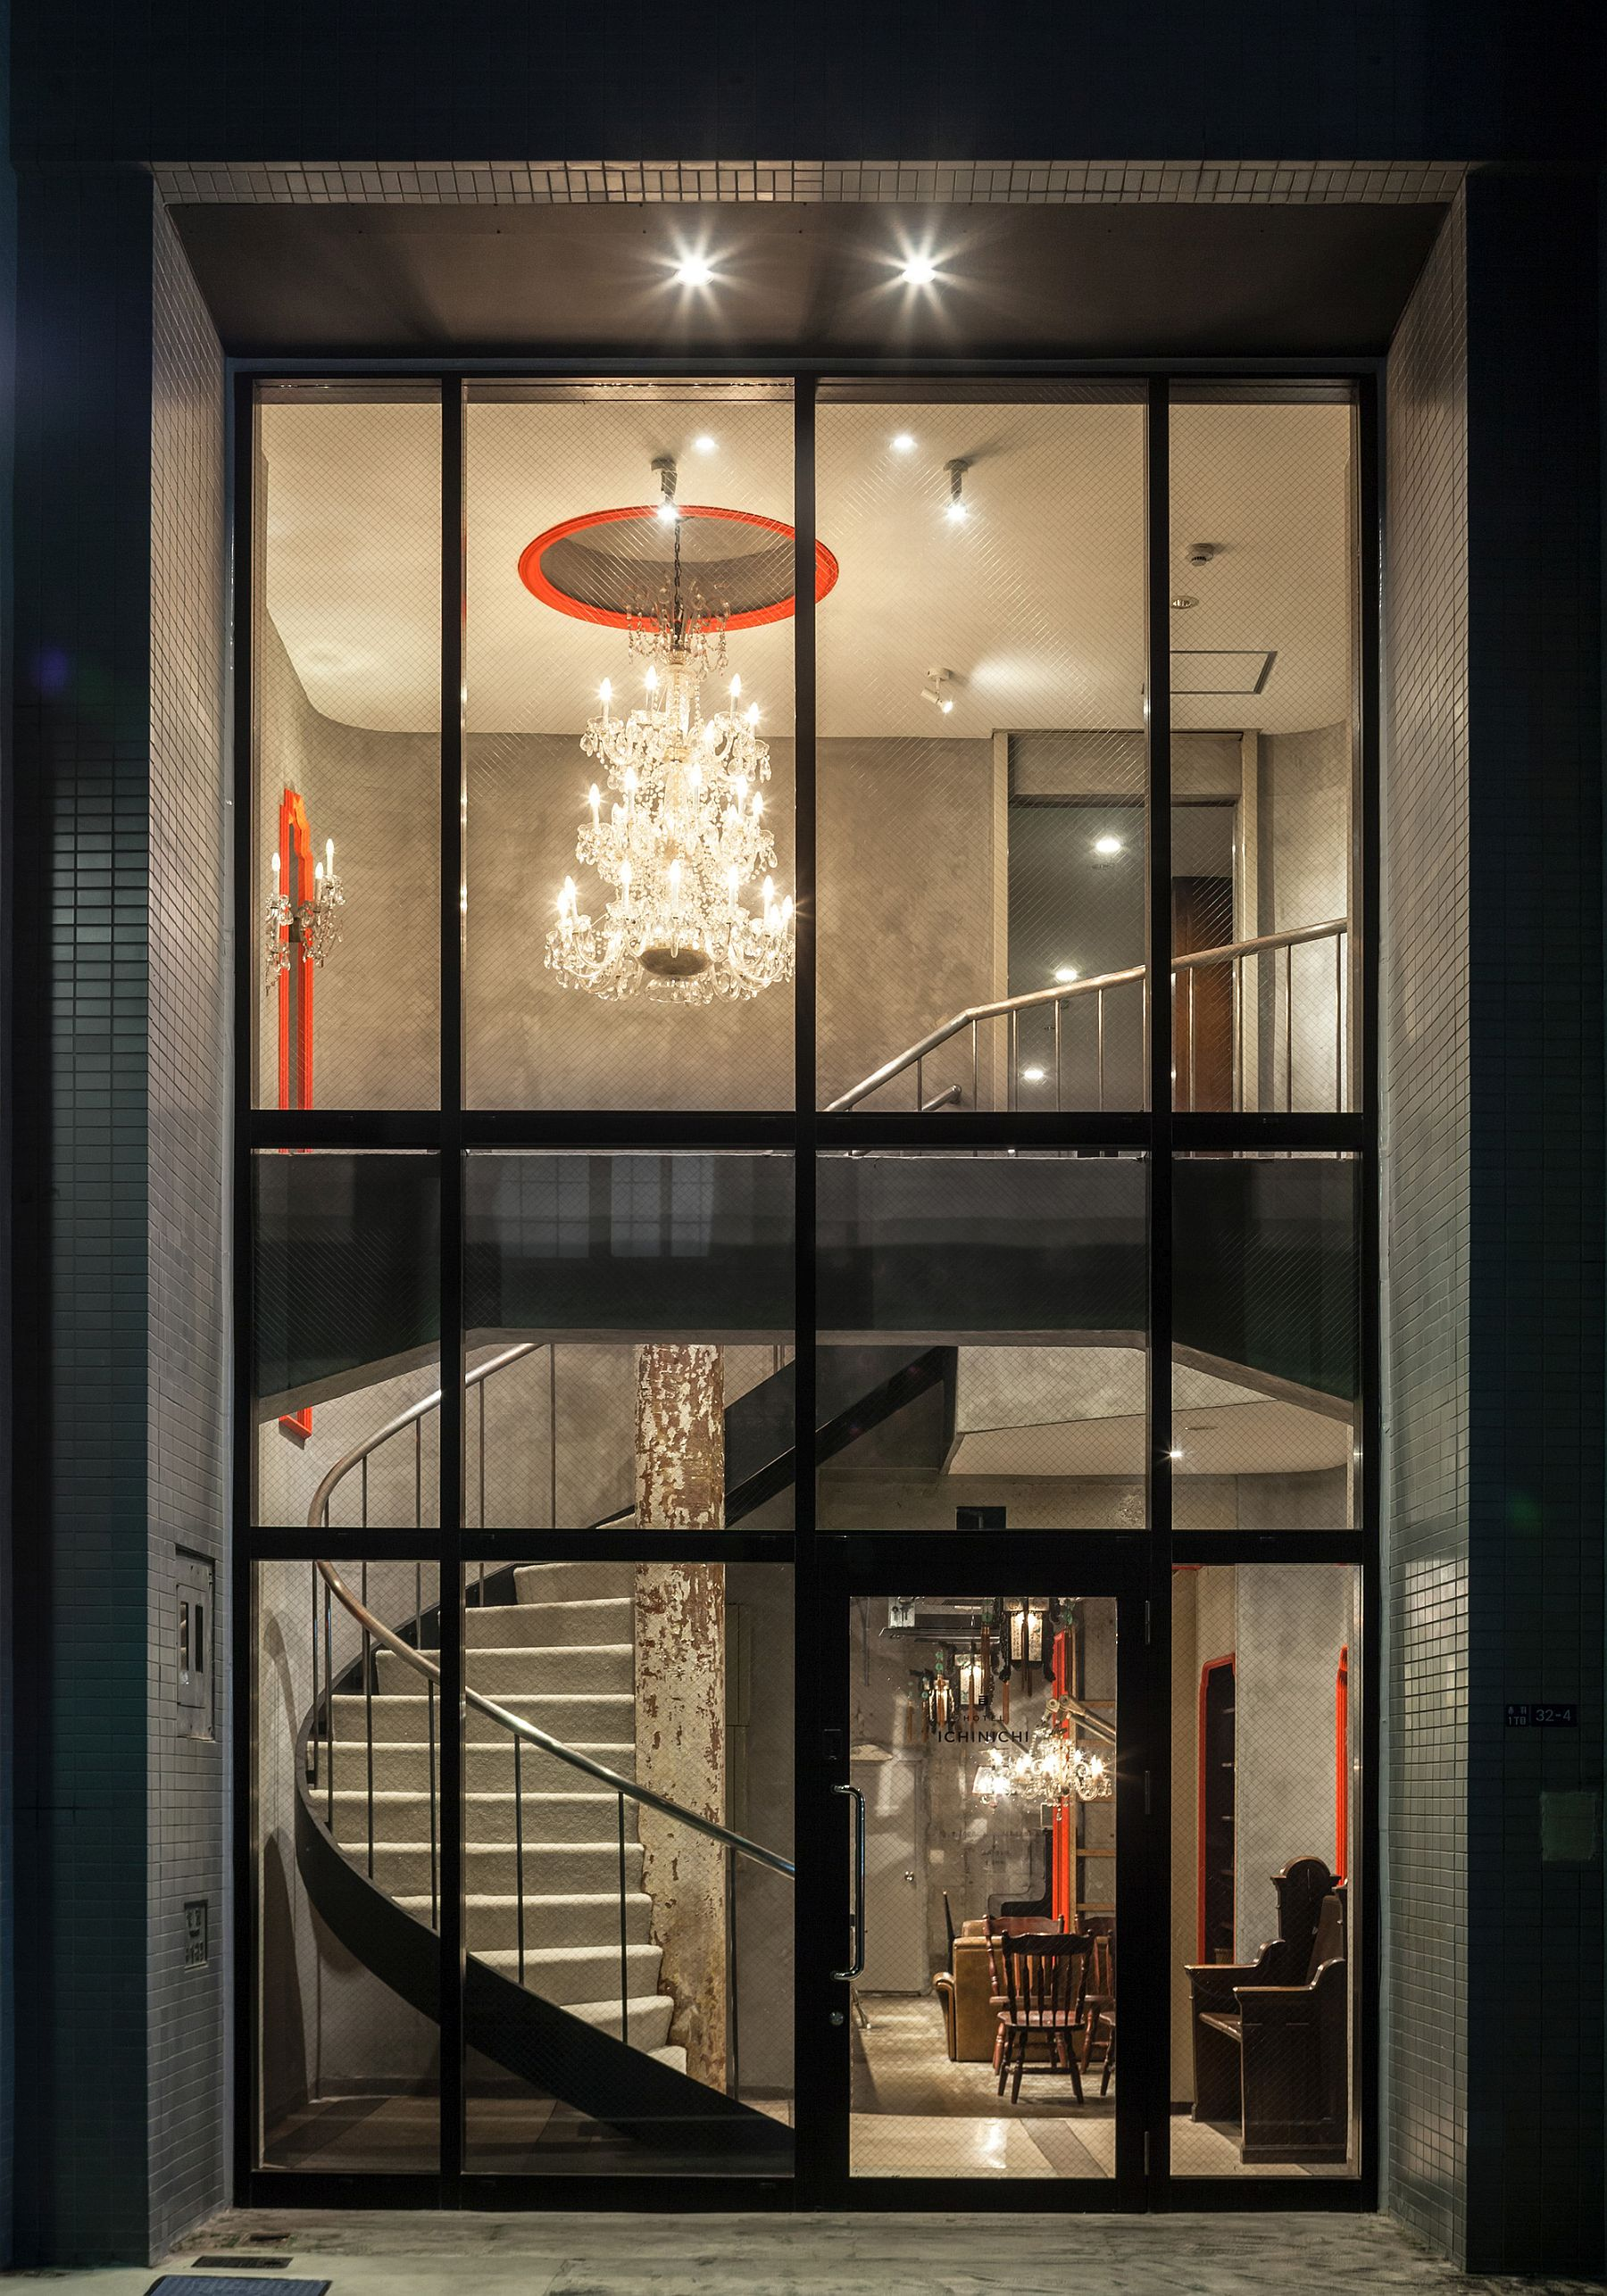 A stunning view of the entry with spiral staircase and grand chandelier